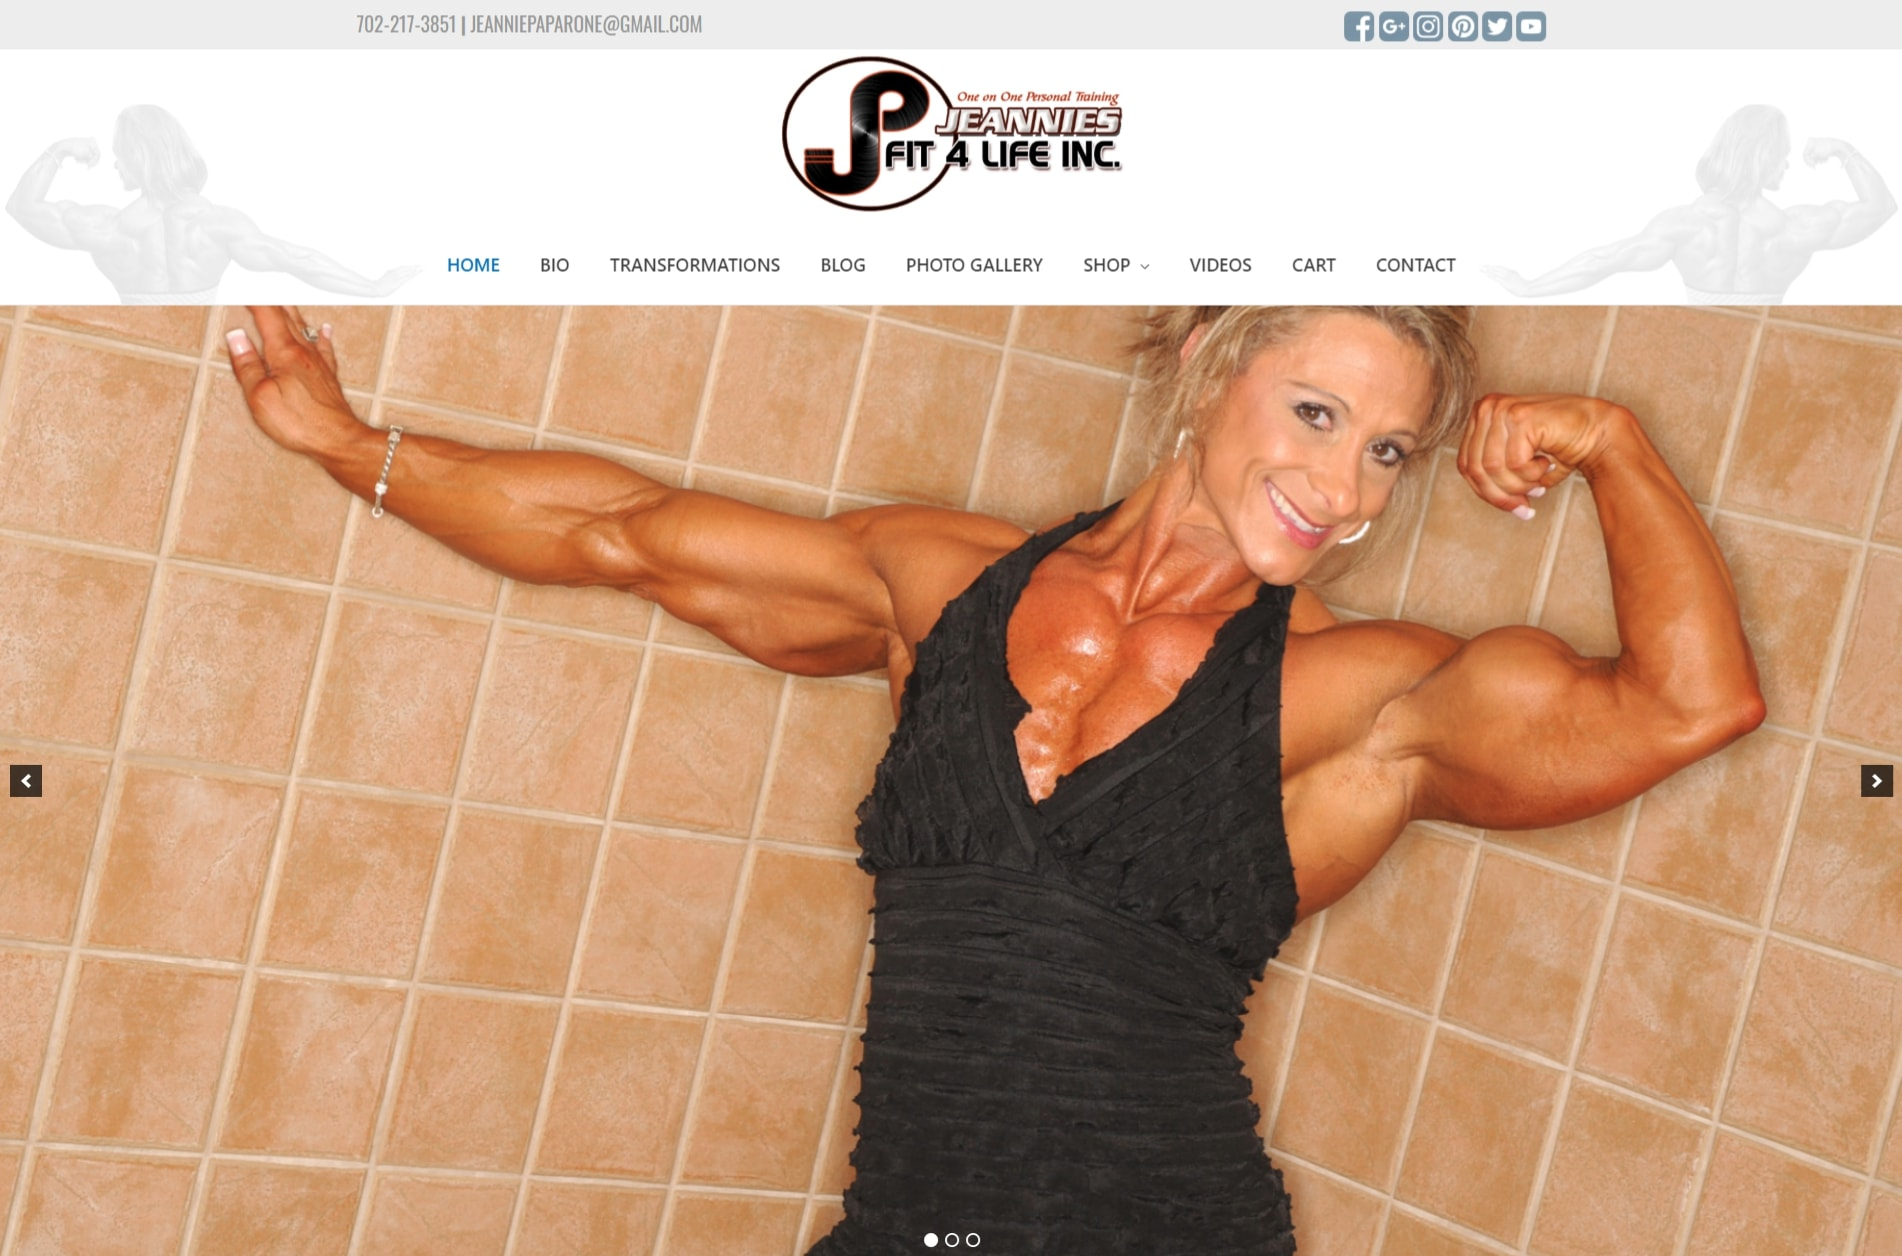 jeannies fit 4life website example by 702 pros for website portfolio